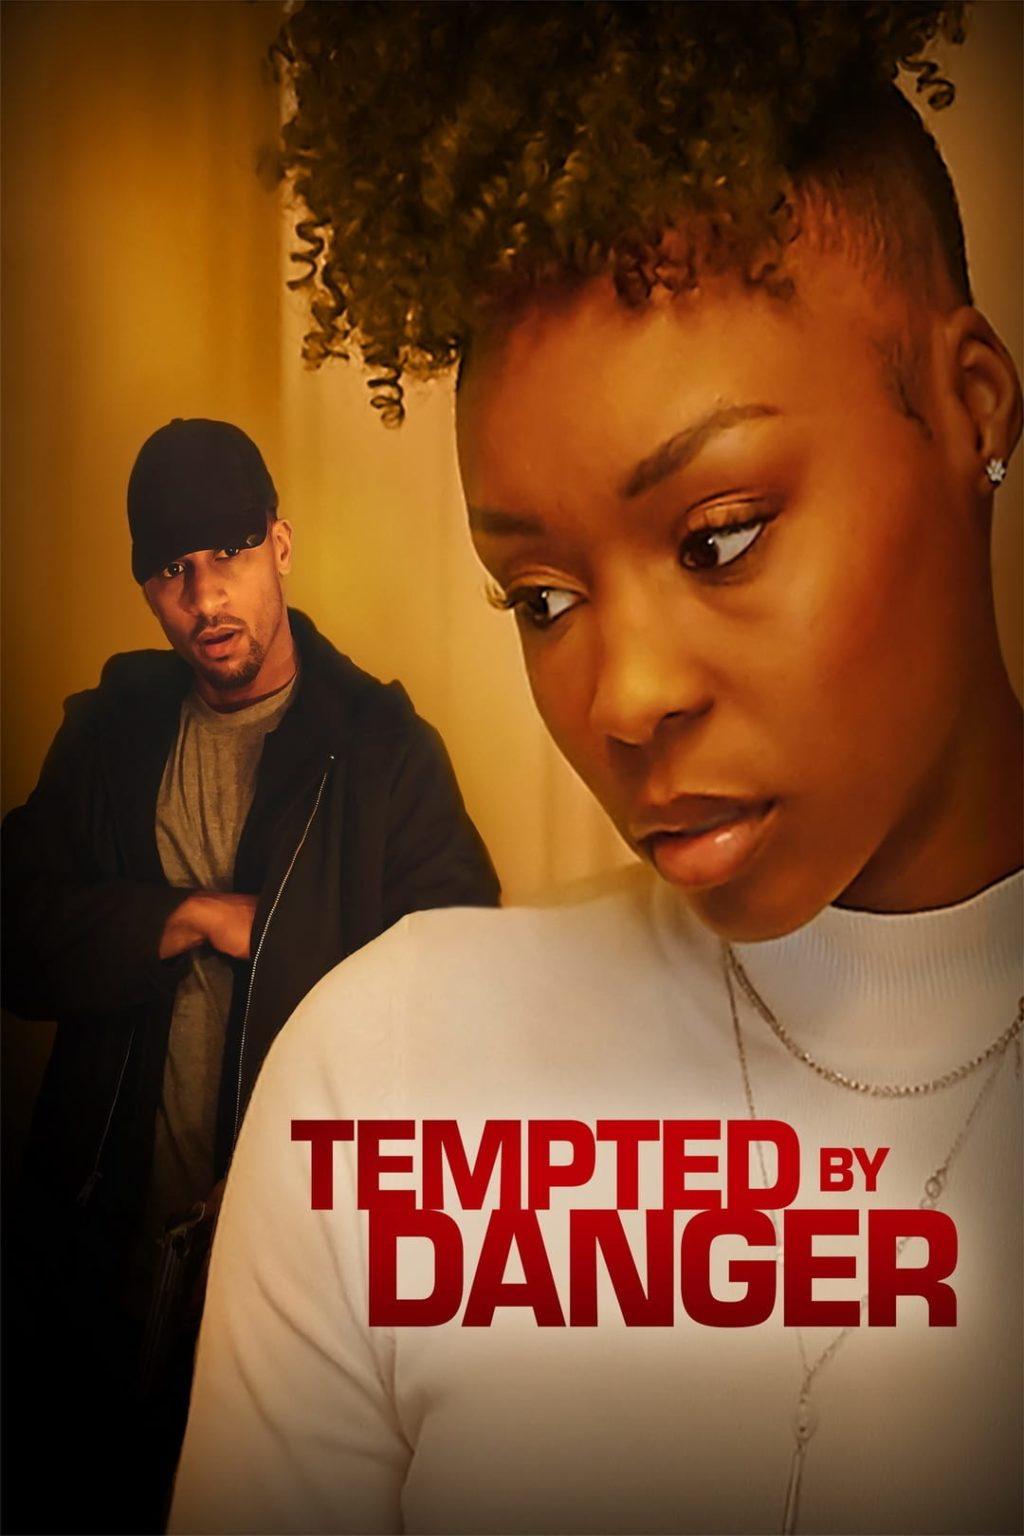 Tempted by Danger 2020 English 720p HDRip ESubs 800MB